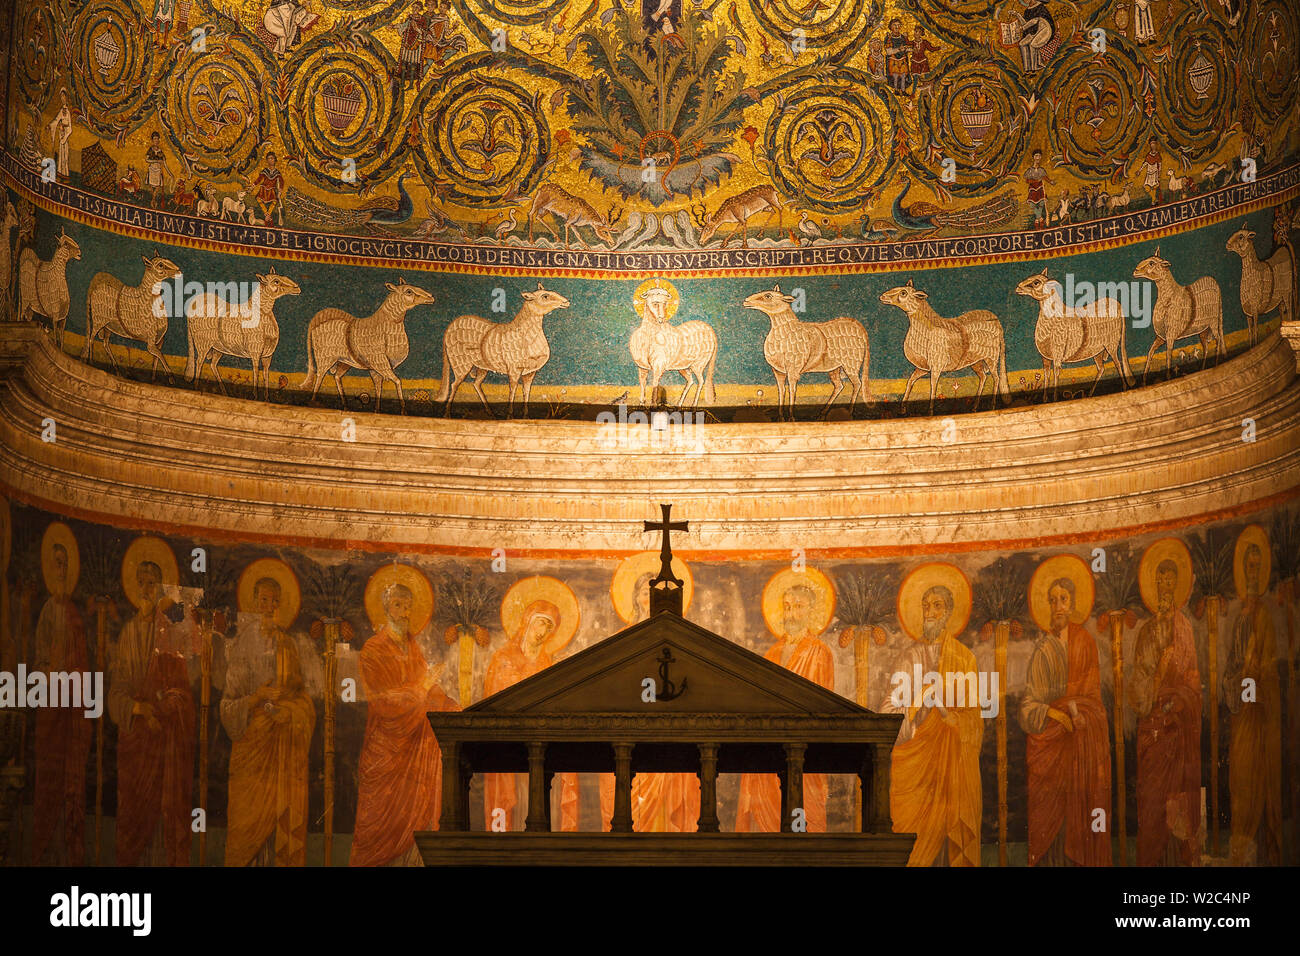 Italy, Lazio, Rome, Piazza Saint Clement, Basilica di San Clemente Stock Photo